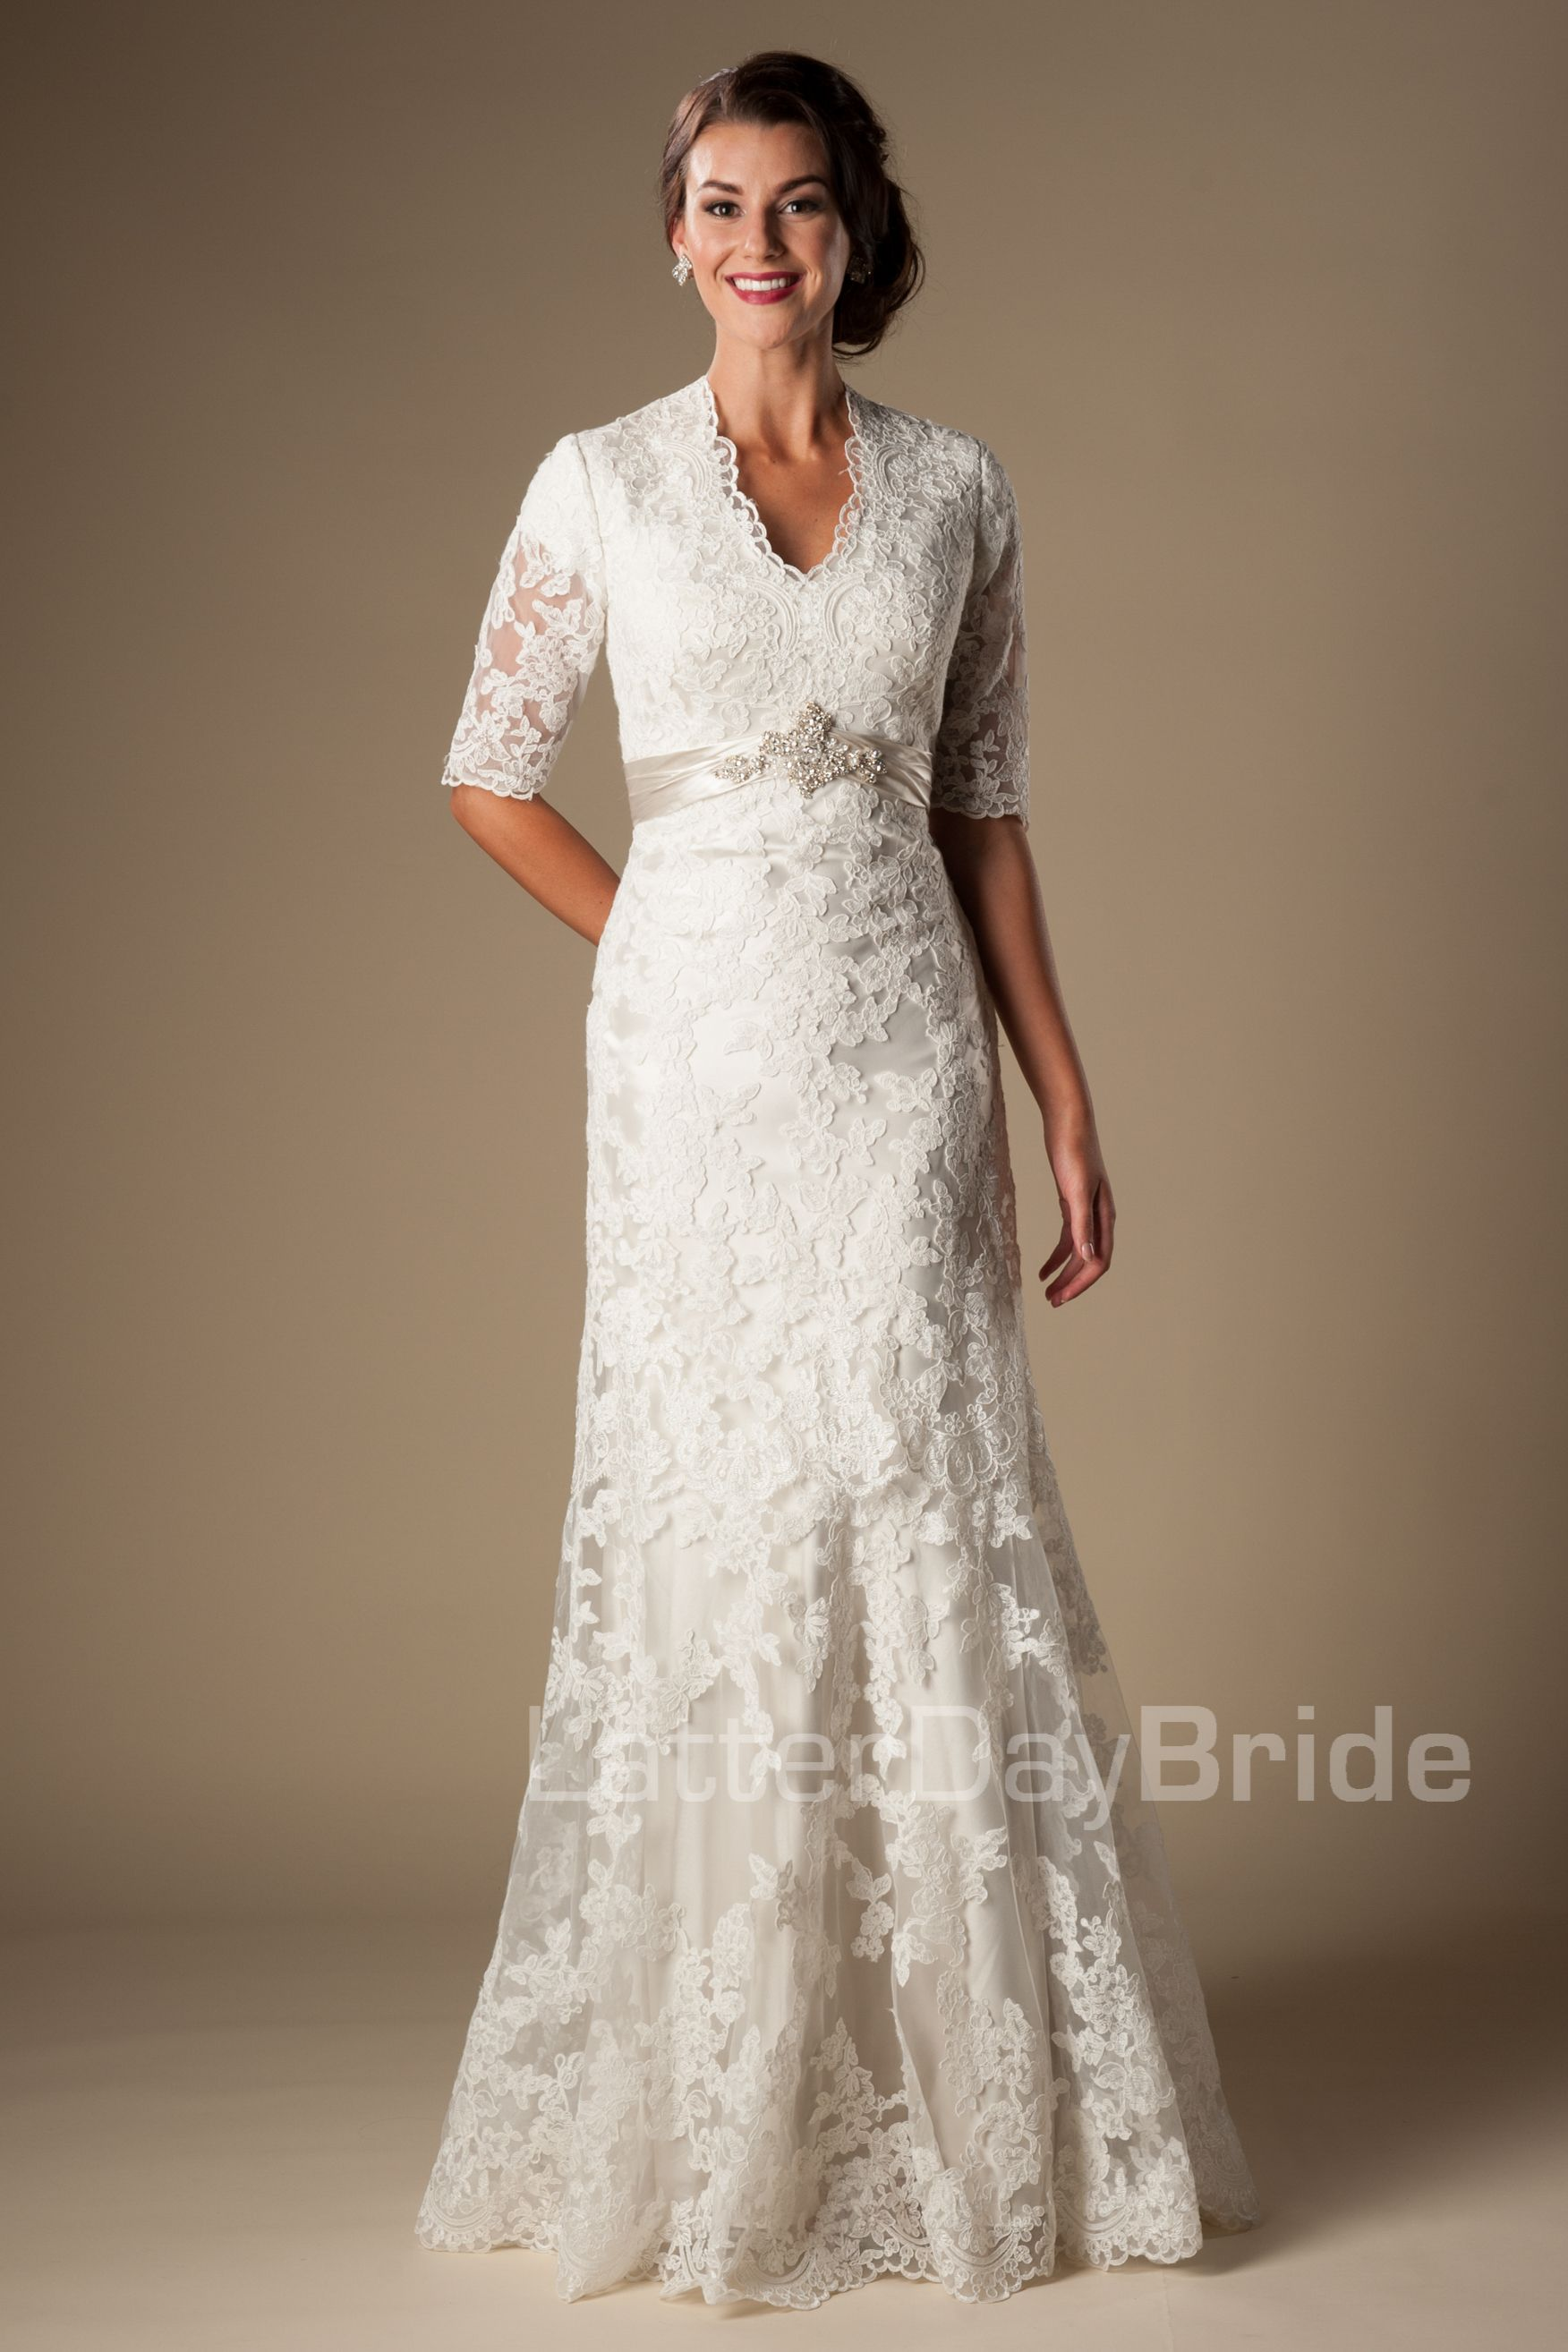 This Modest Wedding Dress Redefines Class. With Beautiful Illusion Lace  Sleeves And A Queen Anne Neckline And Delicate Empire Beaded Waistband, ...